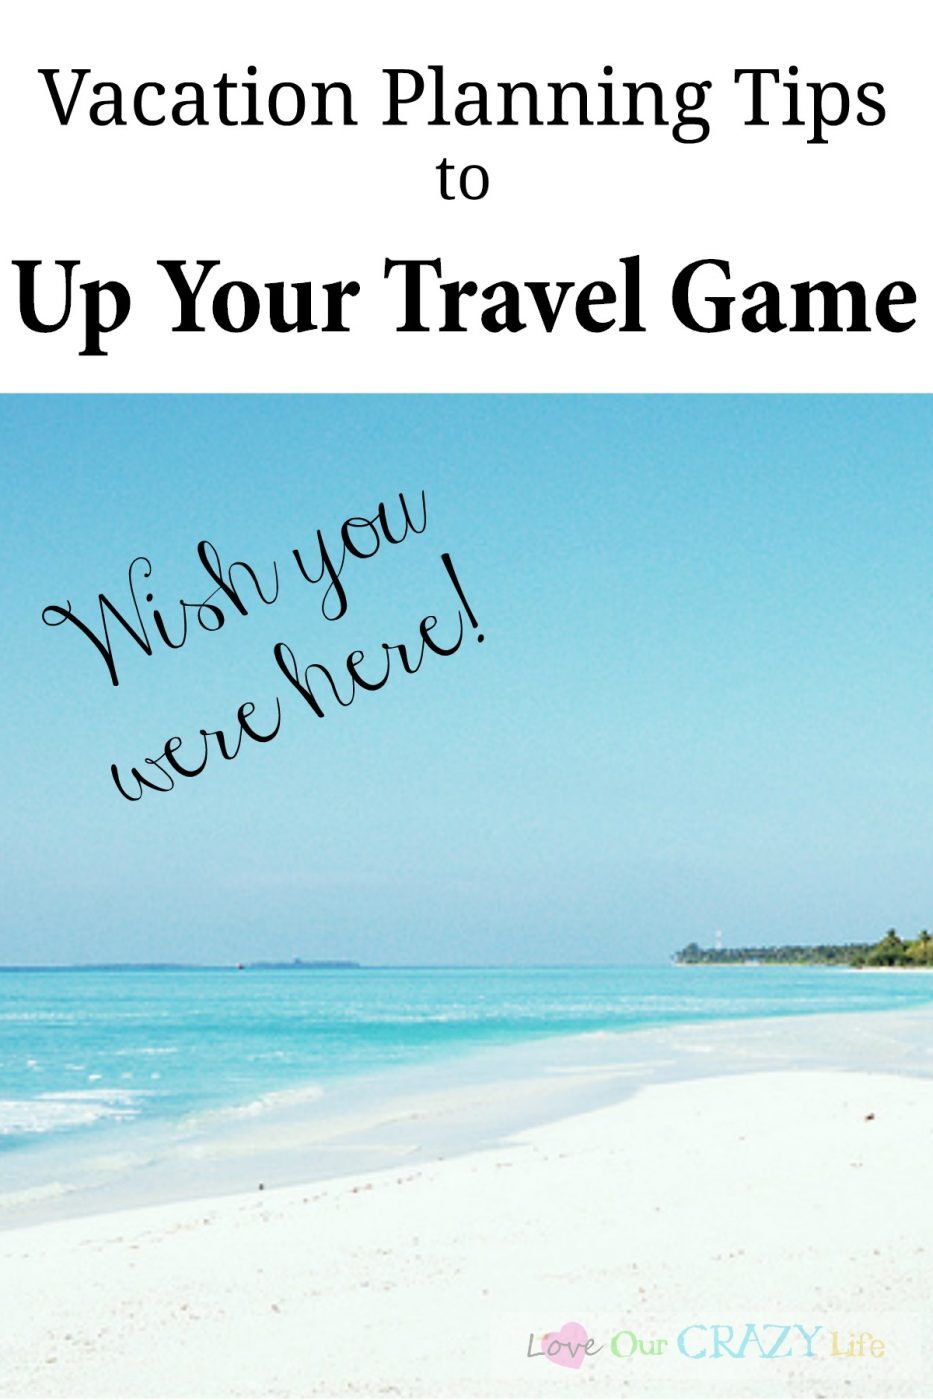 Vacation planning tips that will take your vacation to the next level.